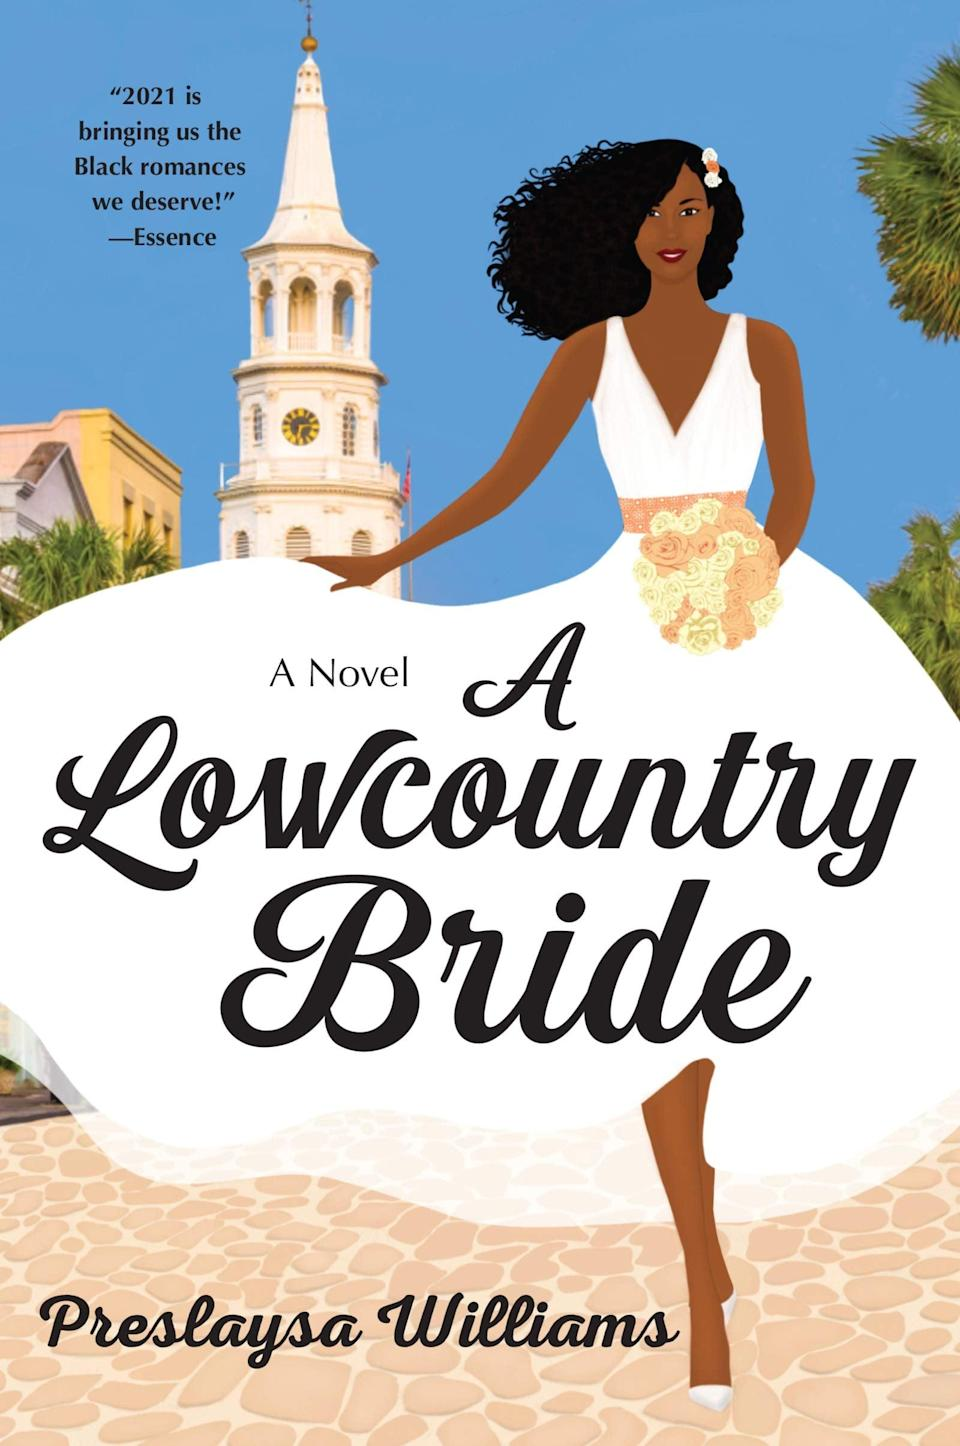 <p><span><b>A Lowcountry Bride</b></span> by Preslaysa Williams is a perfect summer read. Maya Jackson is delighted to find work at a local bridal gown shop when returns home to Charleston to help out her father after an injury, but the last thing on her mind is romance. The same is true for the shop's owner, a veteran and single dad who definitely doesn't have time to fall for a woman who won't be sticking around. </p> <p><em>Out June 1</em></p>